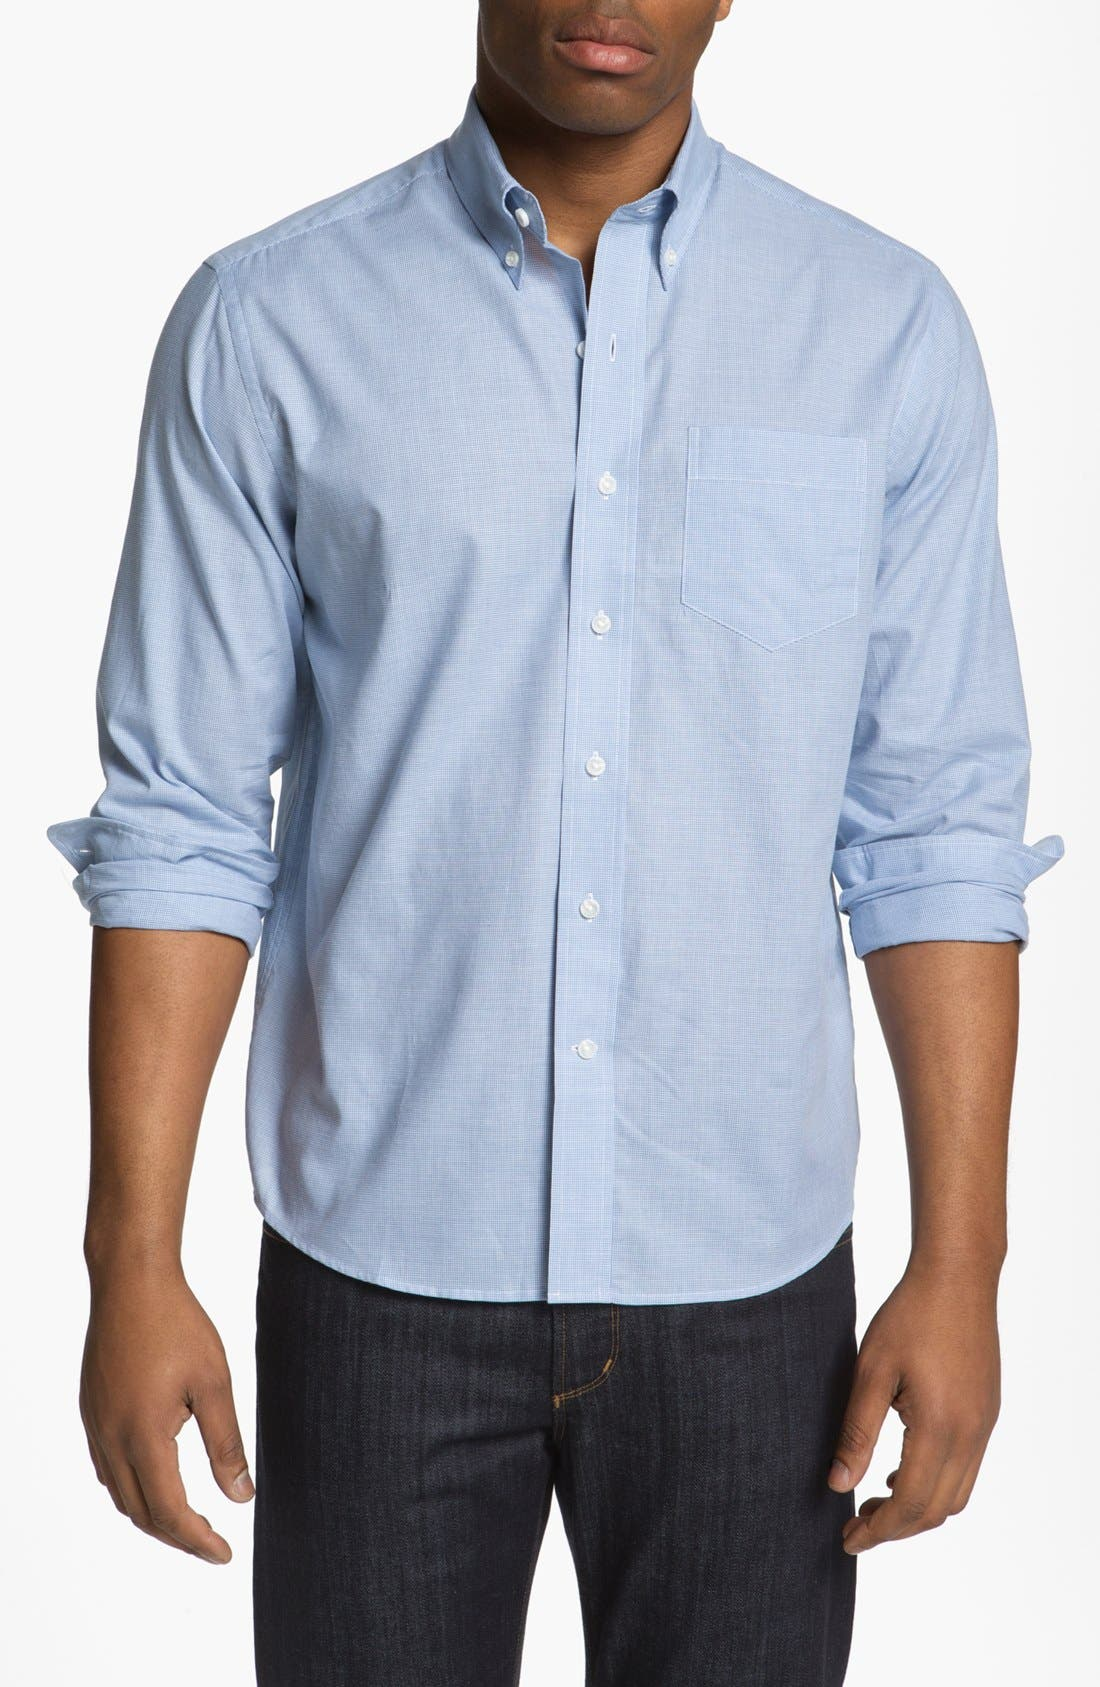 Alternate Image 1 Selected - Cutter & Buck 'Lasell' Regular Fit Sport Shirt (Big & Tall)